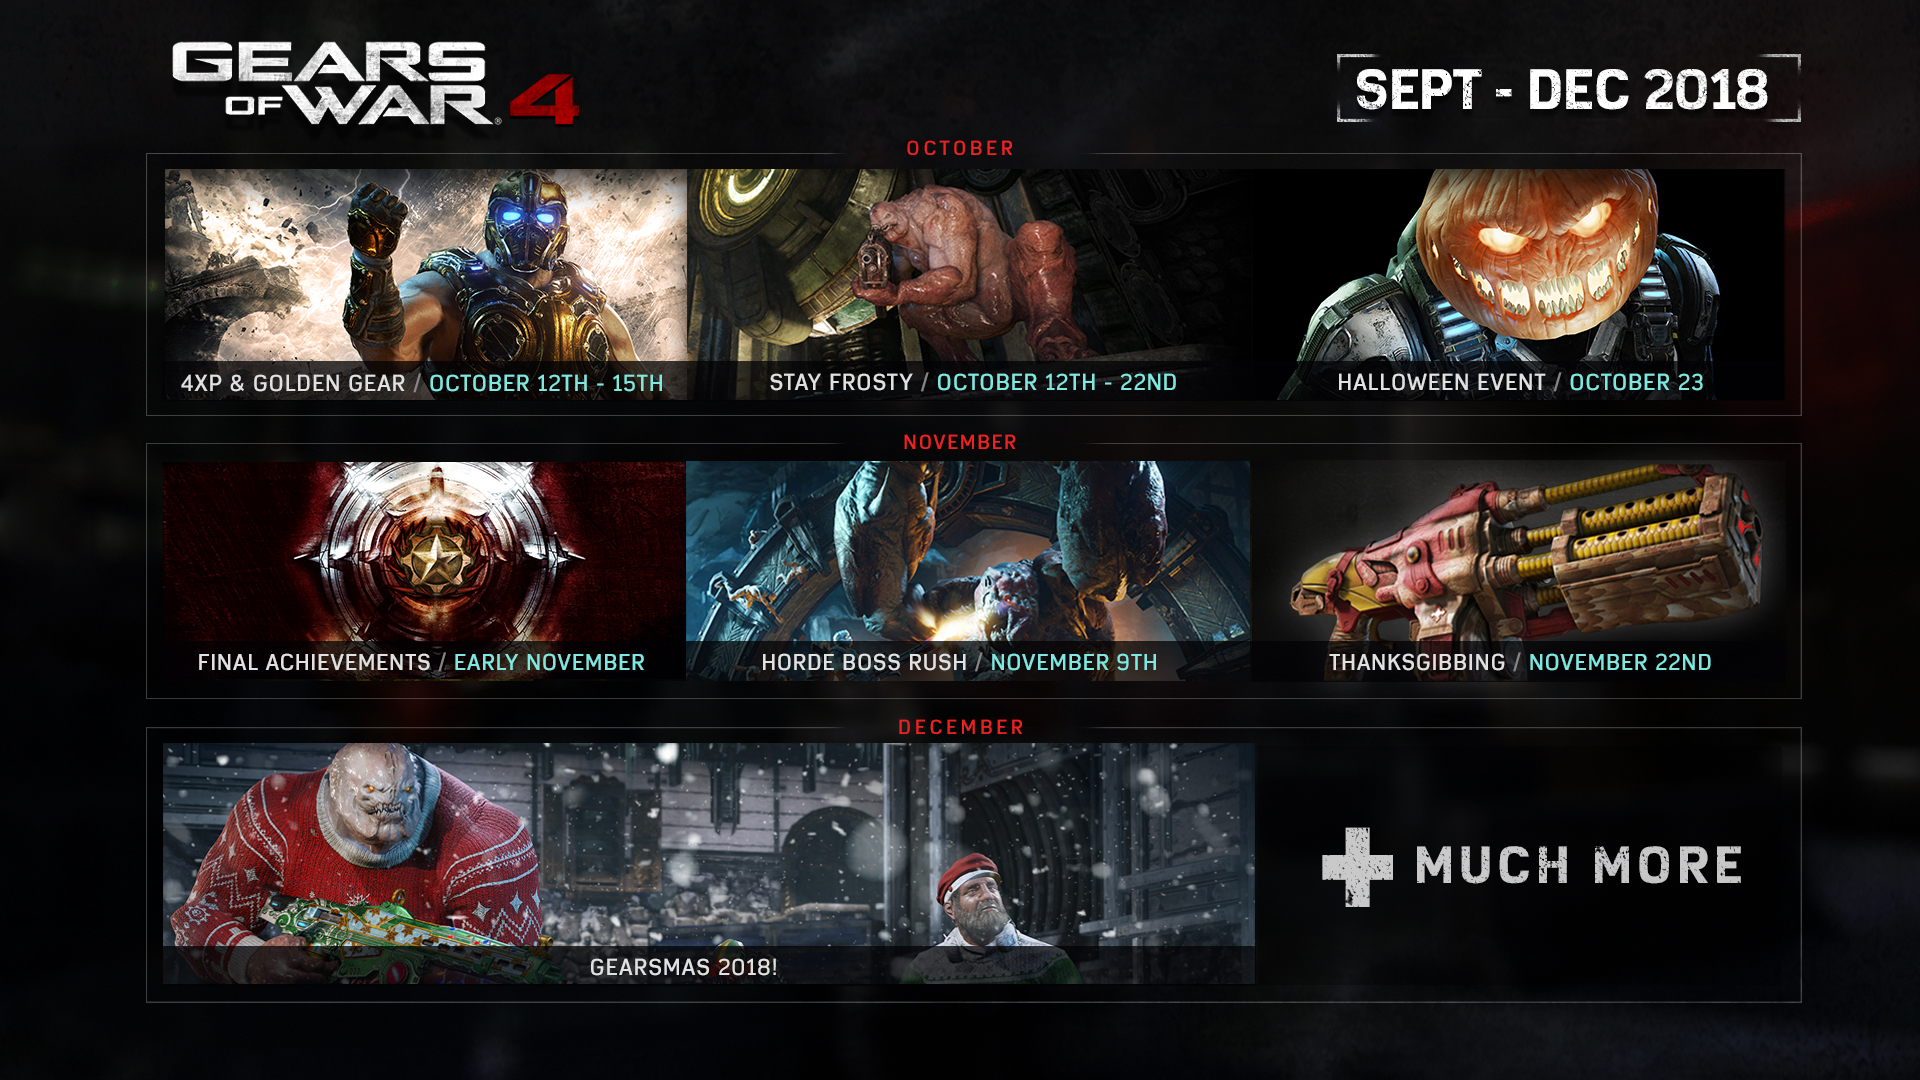 Gears of War 4 Events 2019